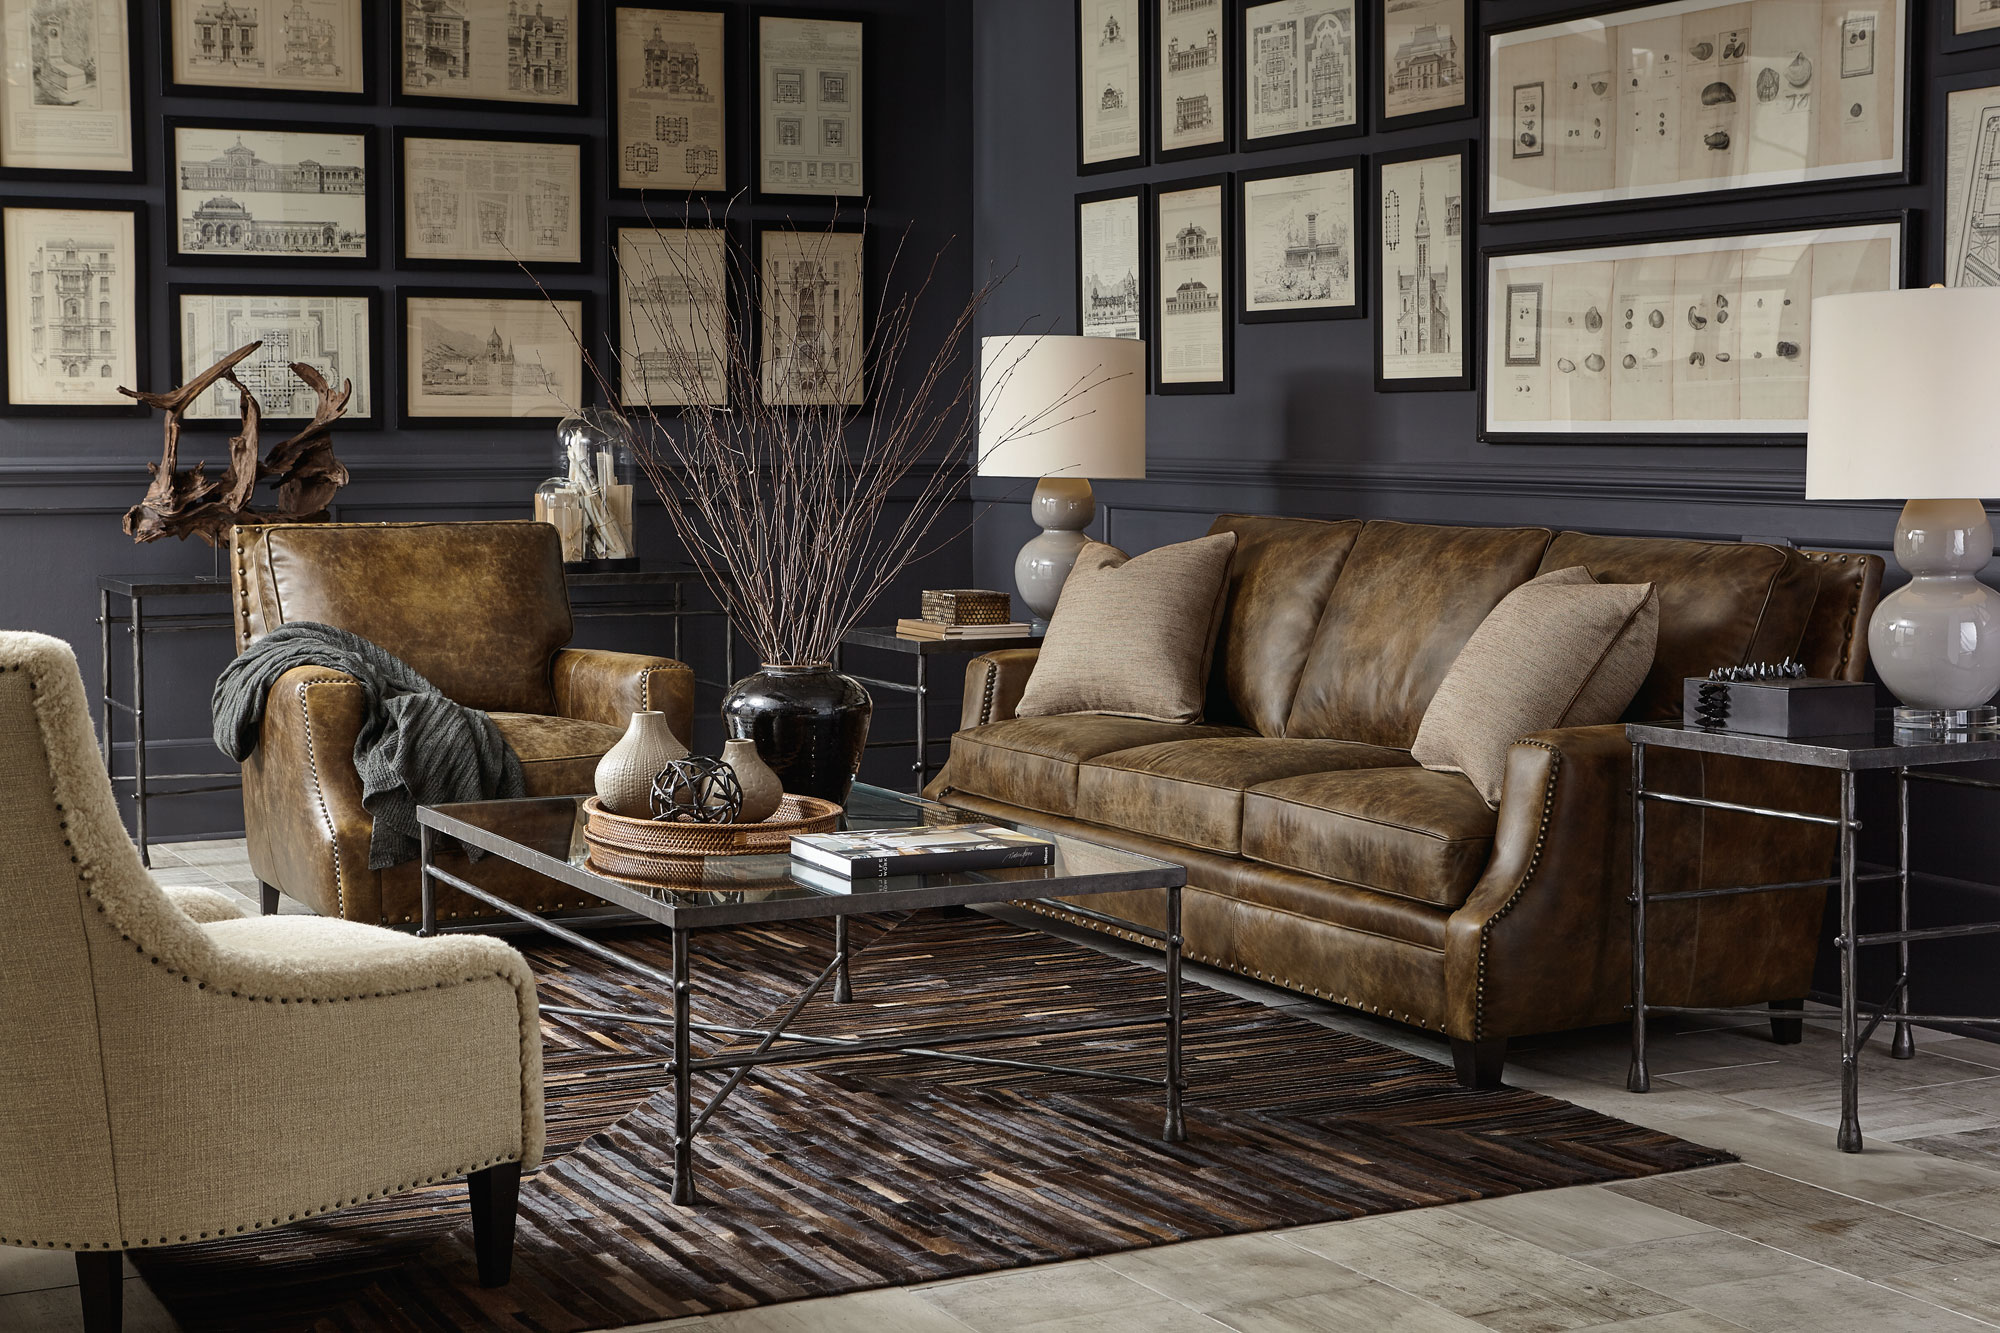 Trends furniture Room The Interior Design Trends You Should Know For Fall and Trends Its Time To Let Go Elle Decor The Interior Design Trends You Should Know For Fall and Trends